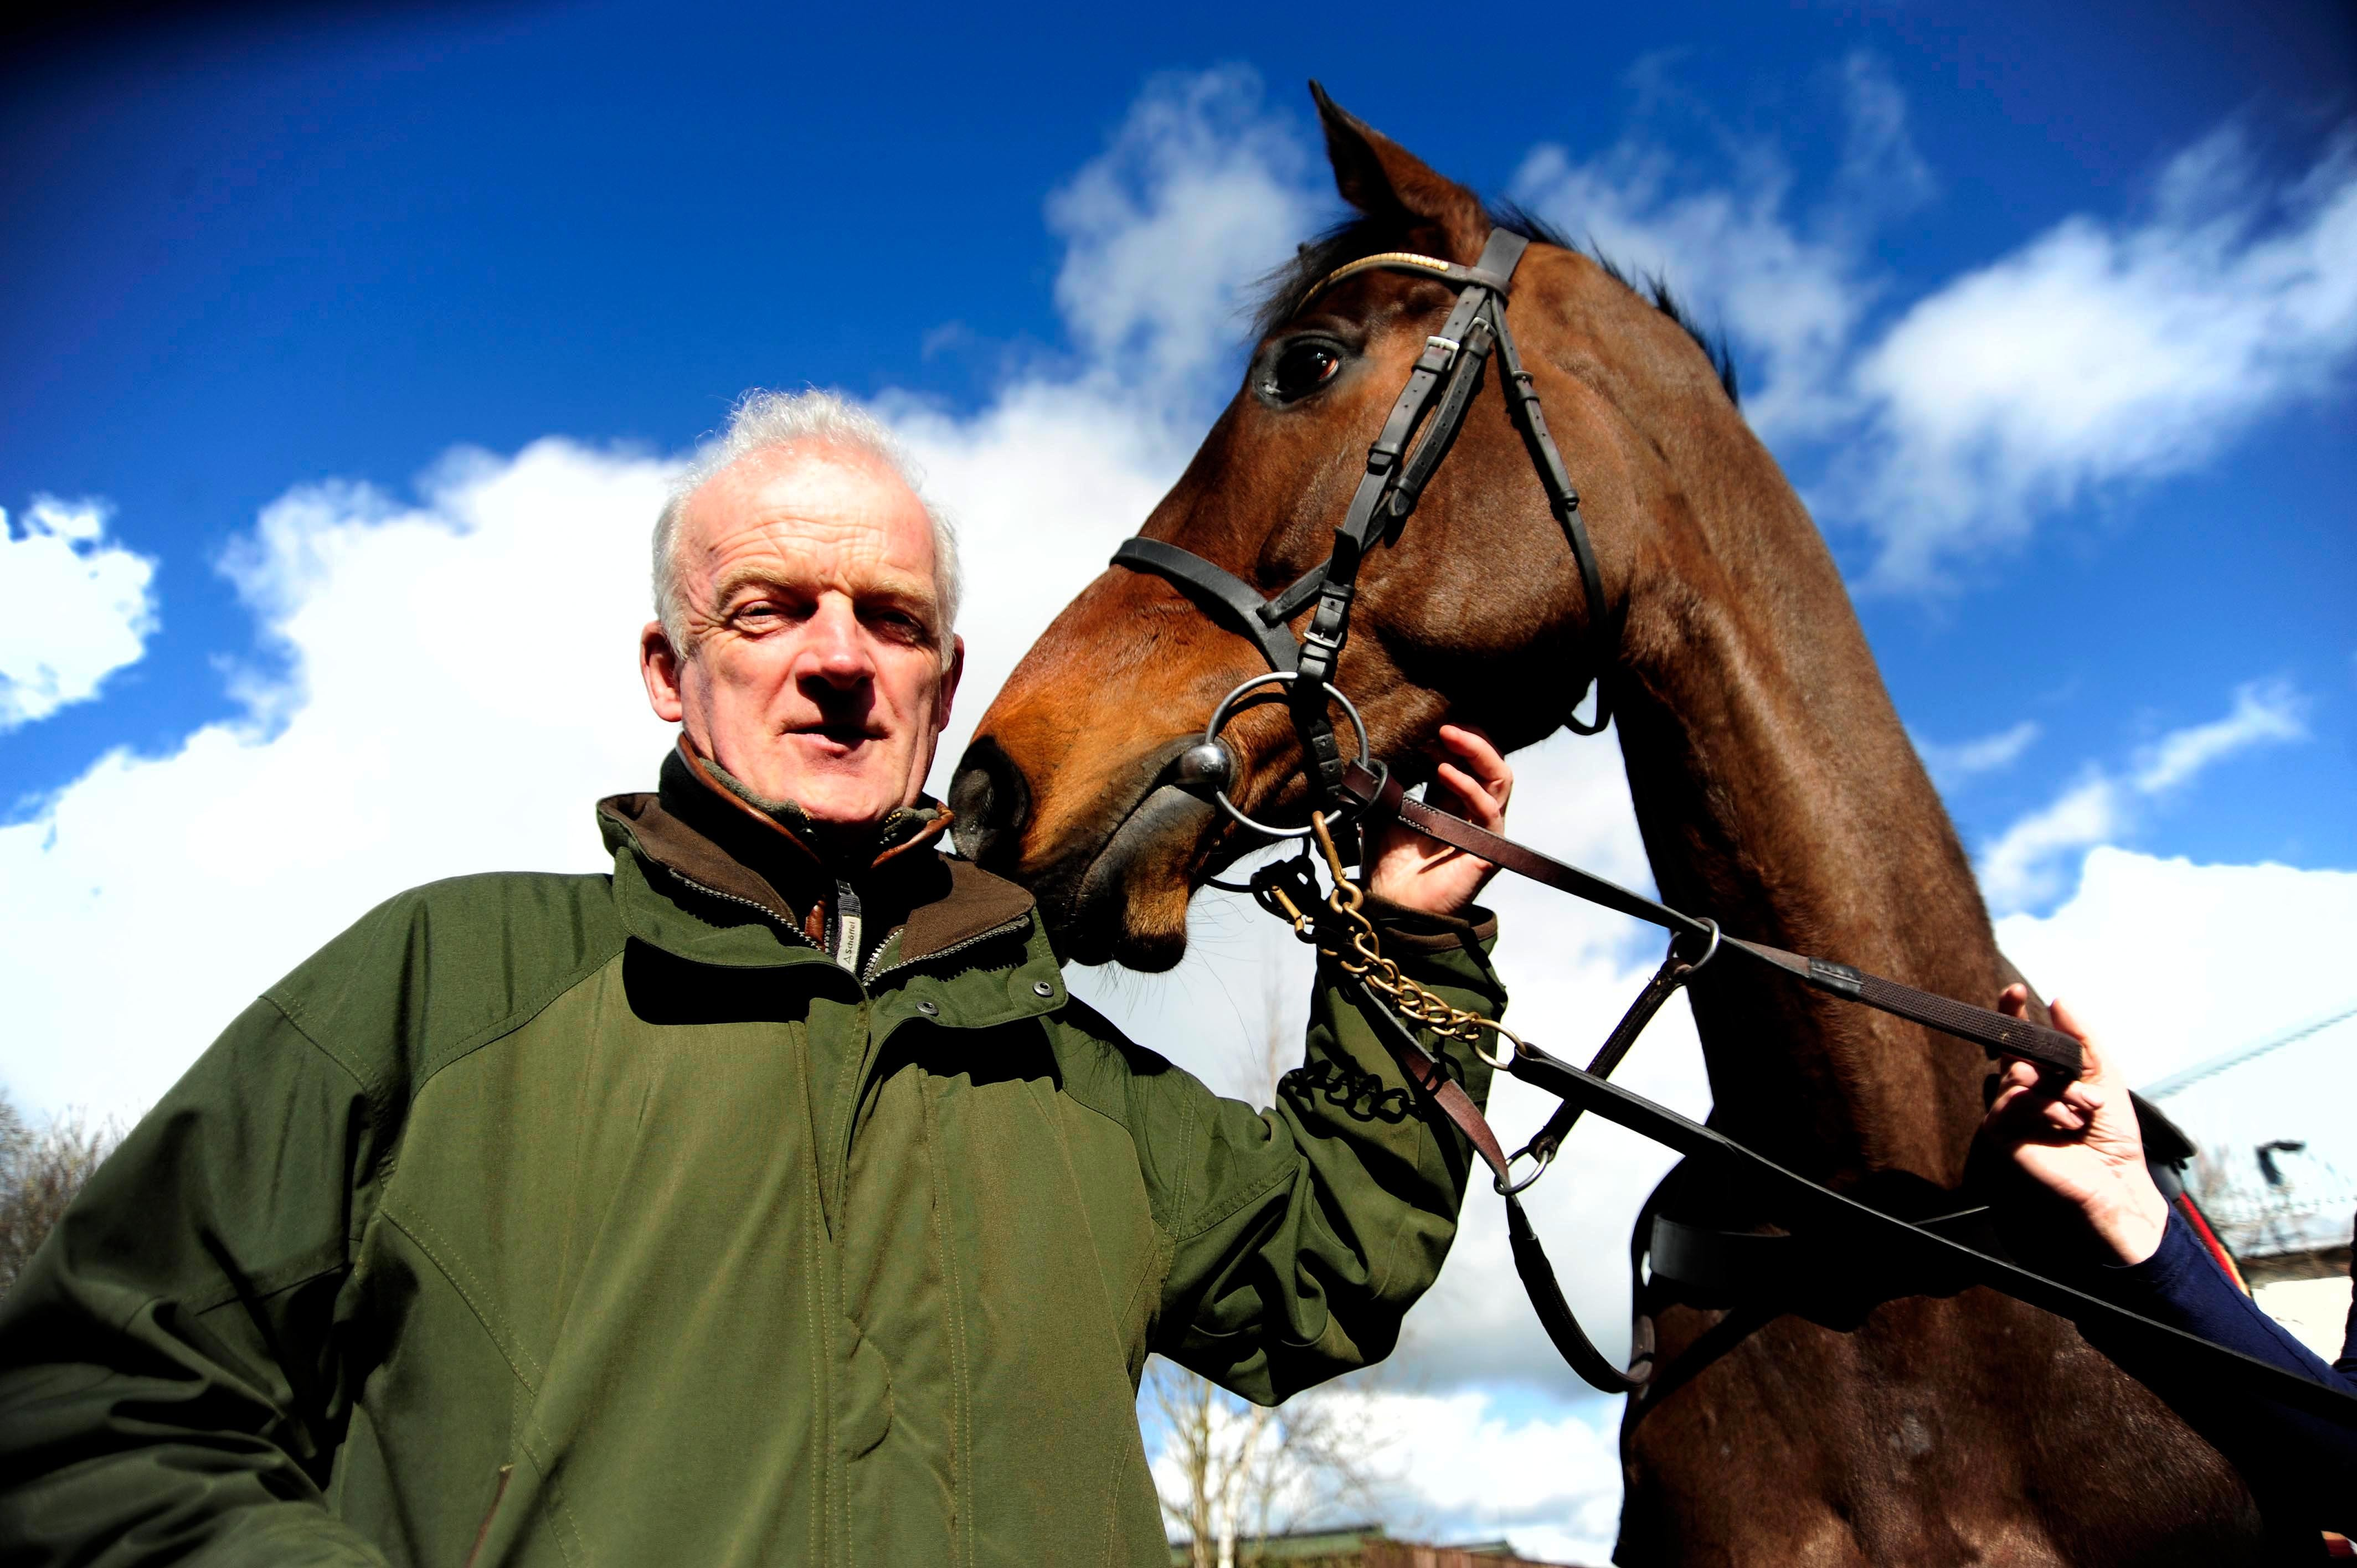 Willie Mullins has often run his stable stars in the Moscow Flyer Novice Hurdle